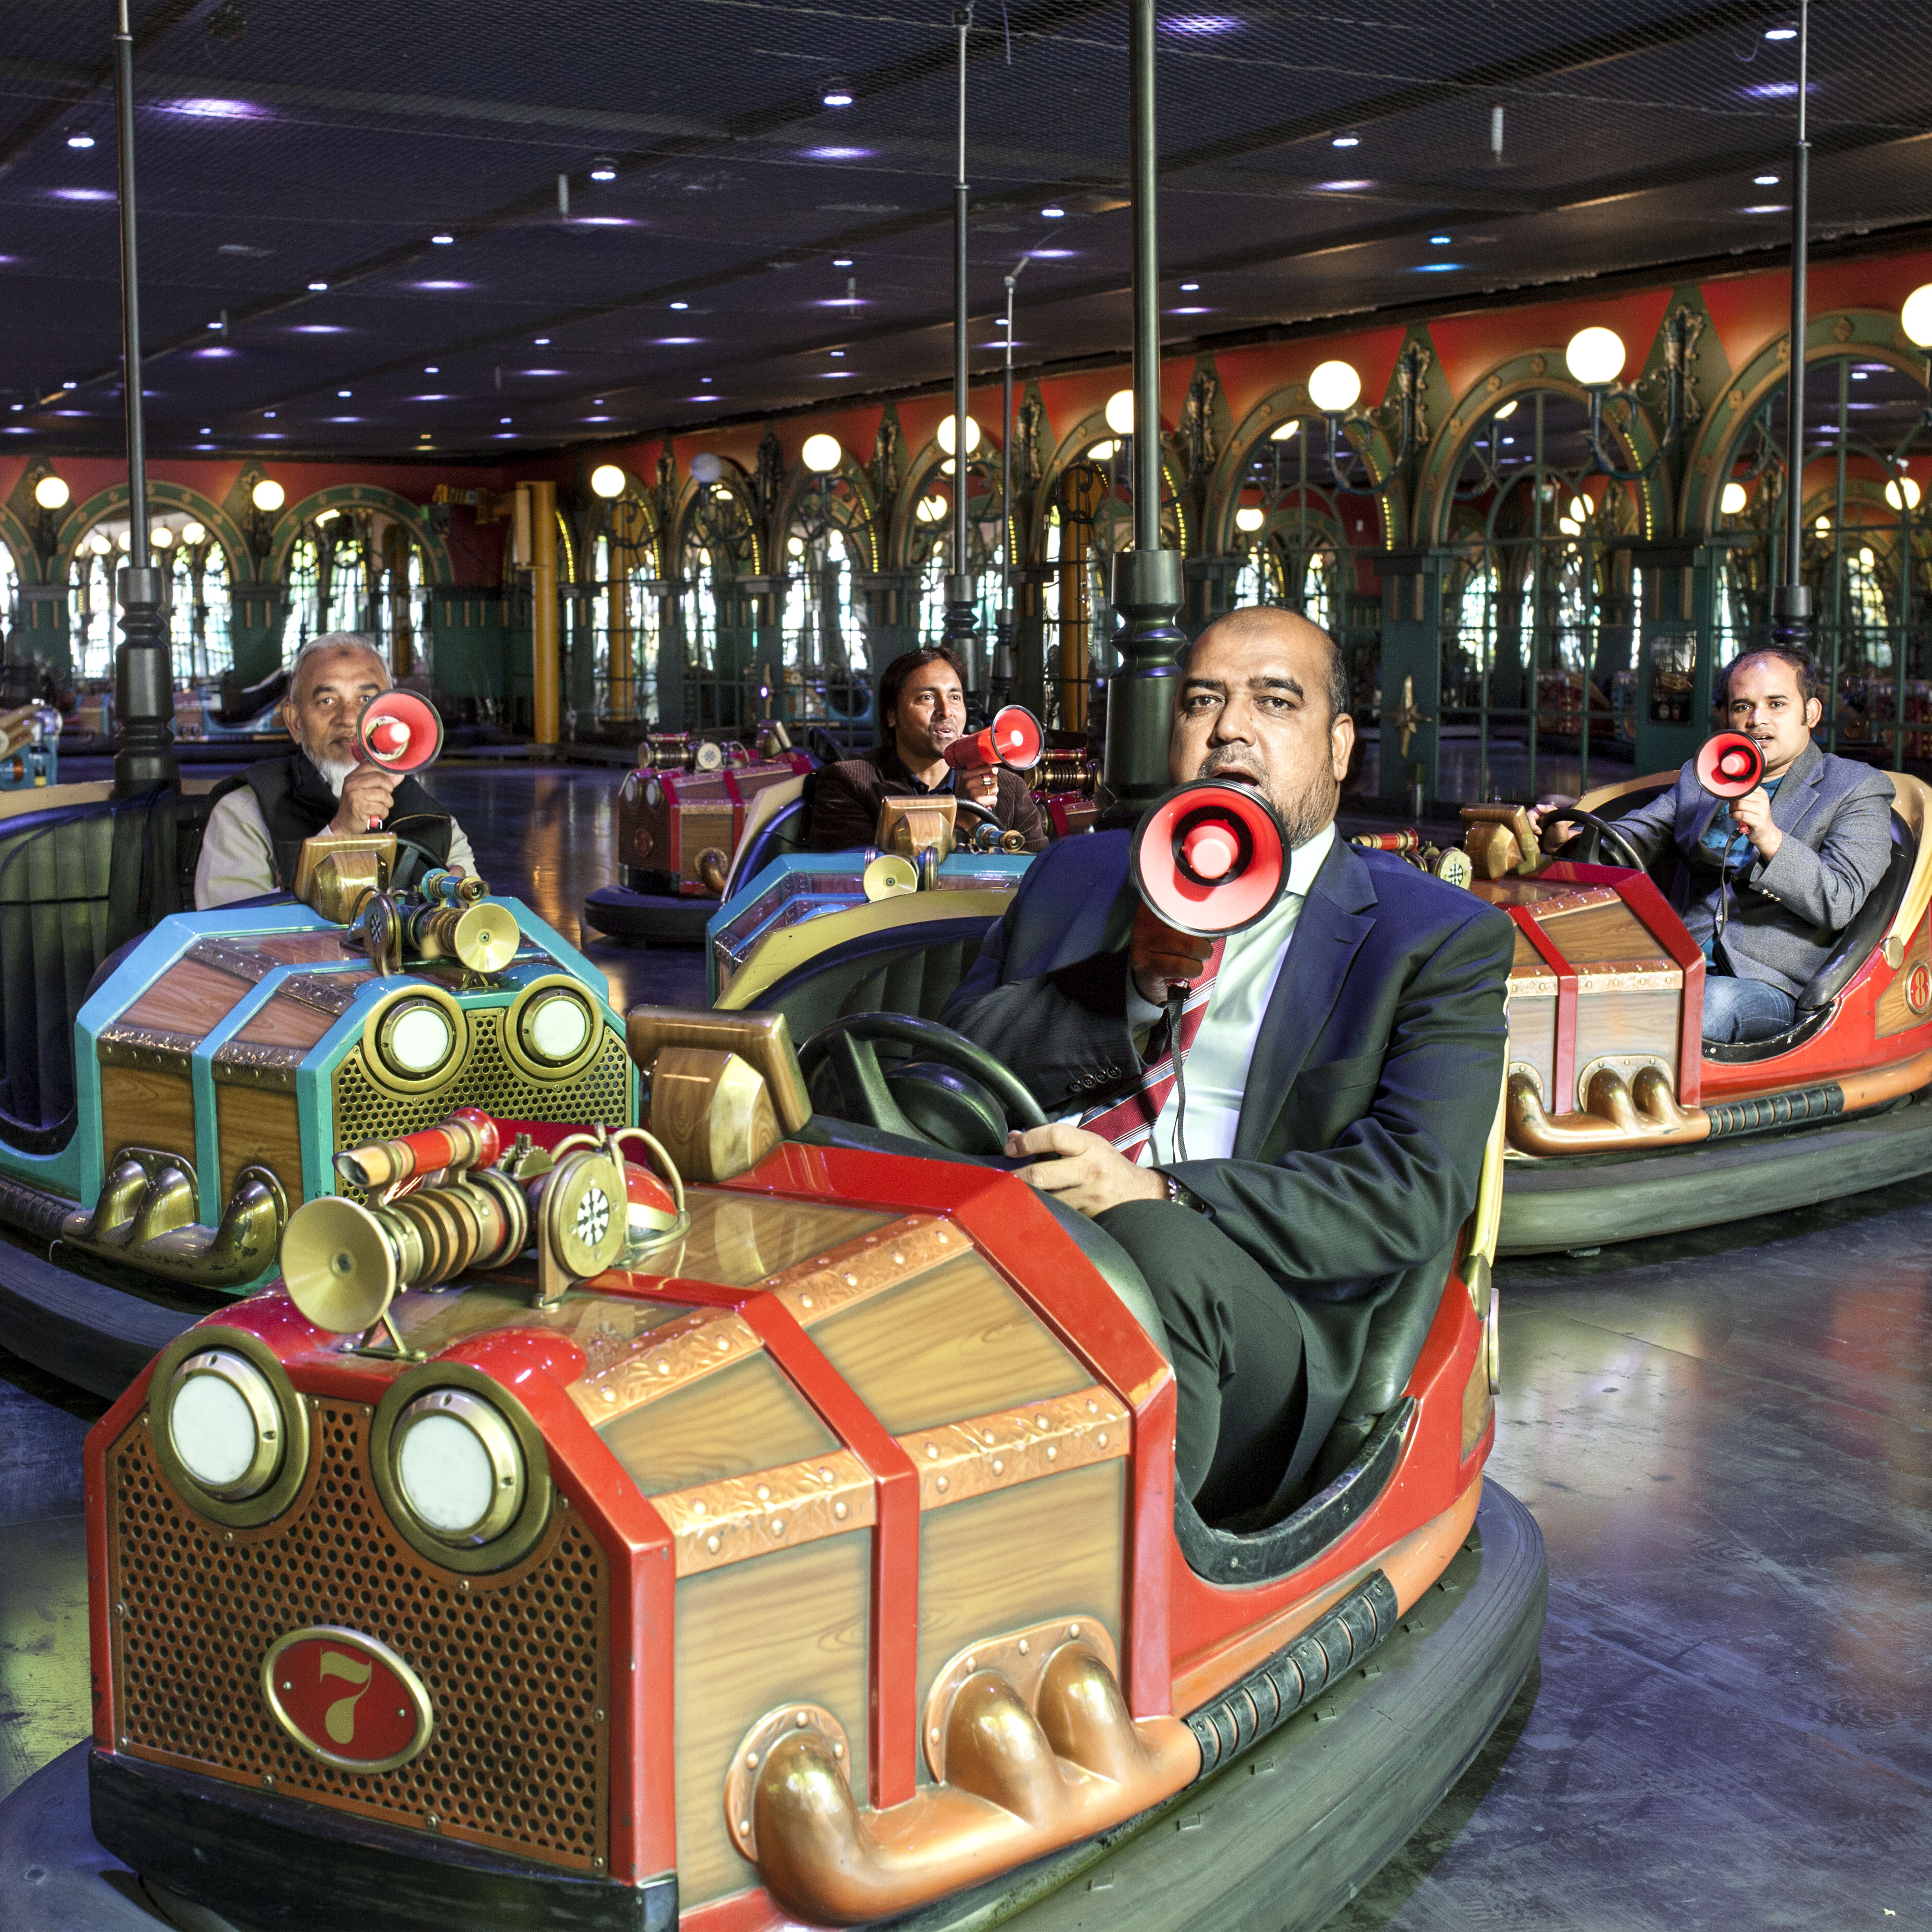 Immigrant men shouting into megaphones and sitting in bumper cars